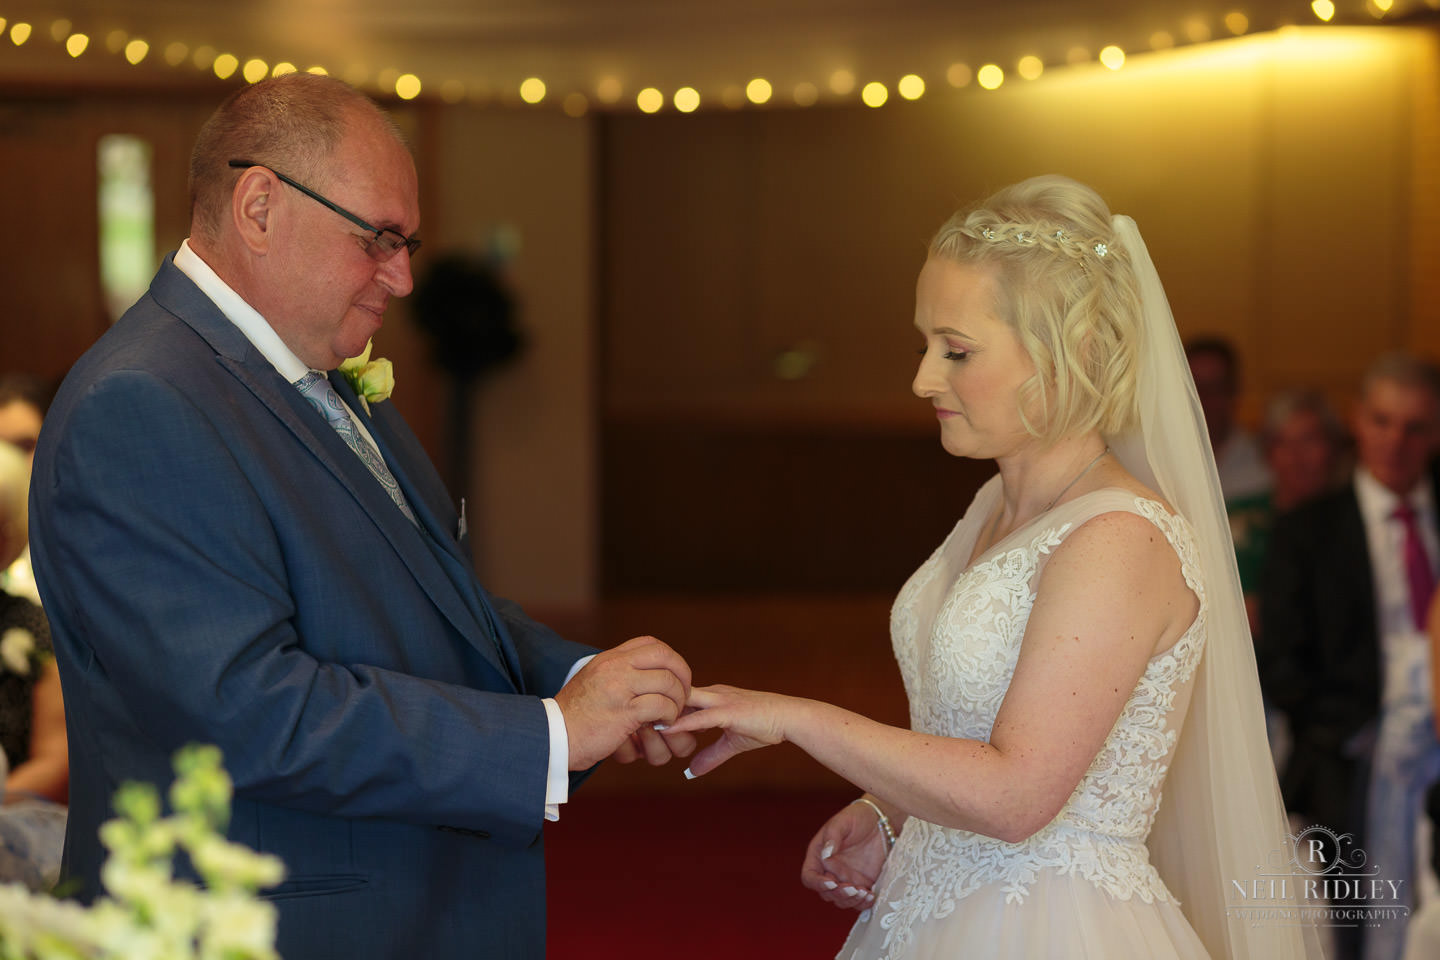 Bride and Groom exchange wedding rings at Macdonald Portal Hotel, Tarporley